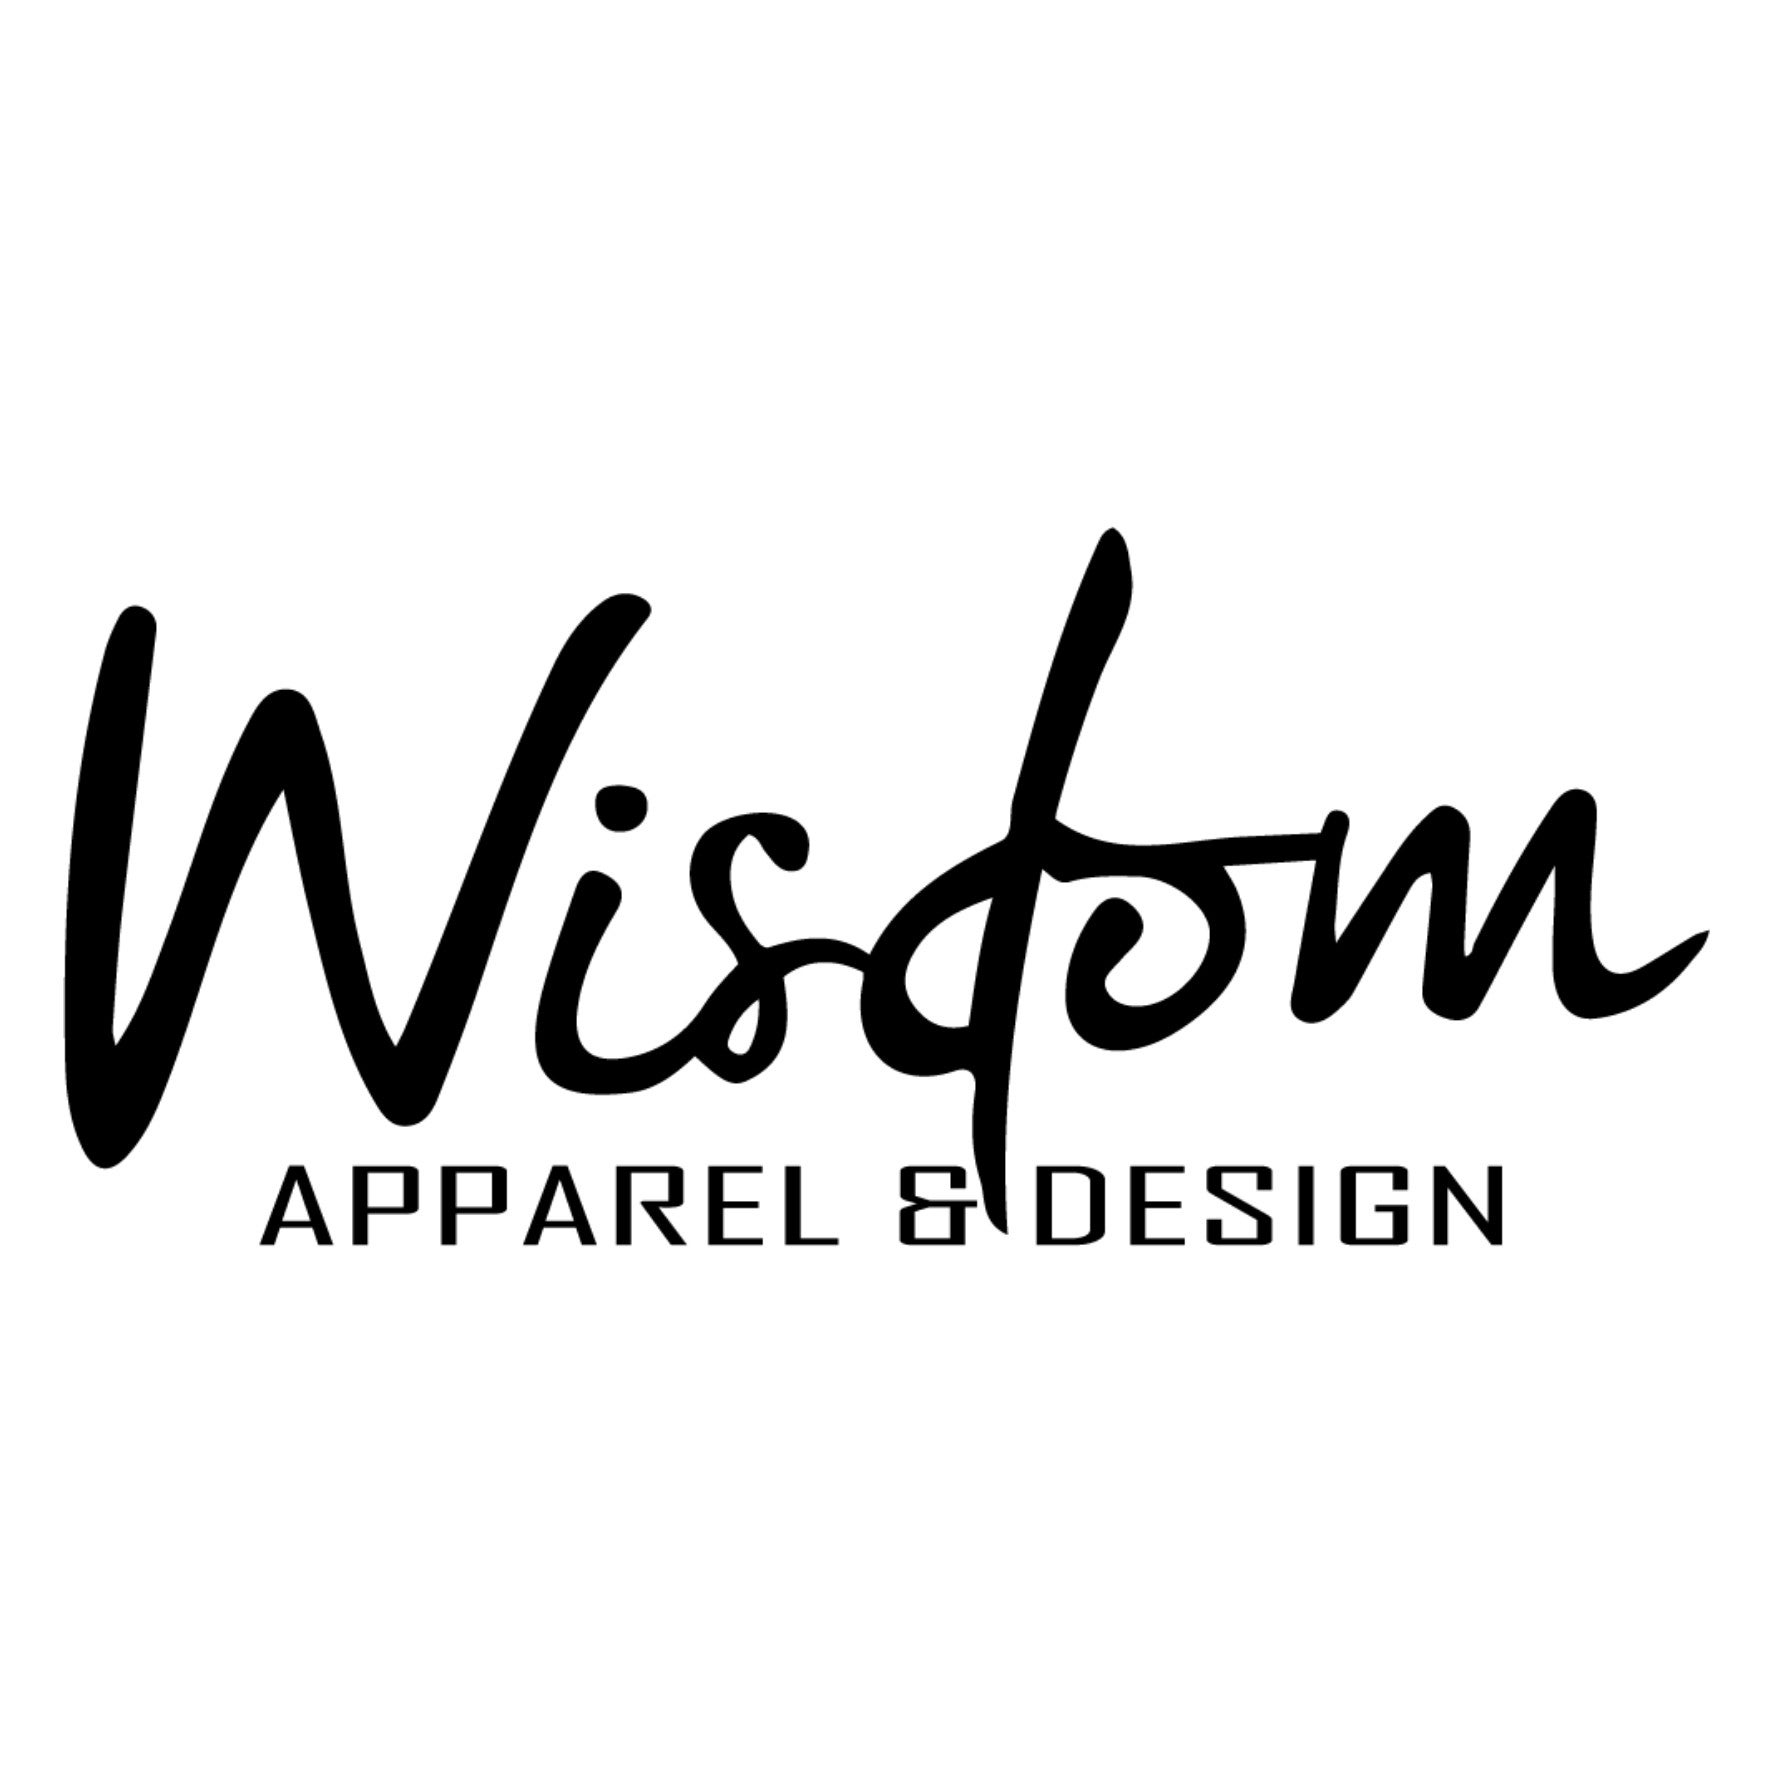 Wisdom Apparel & Design, LLC's account image